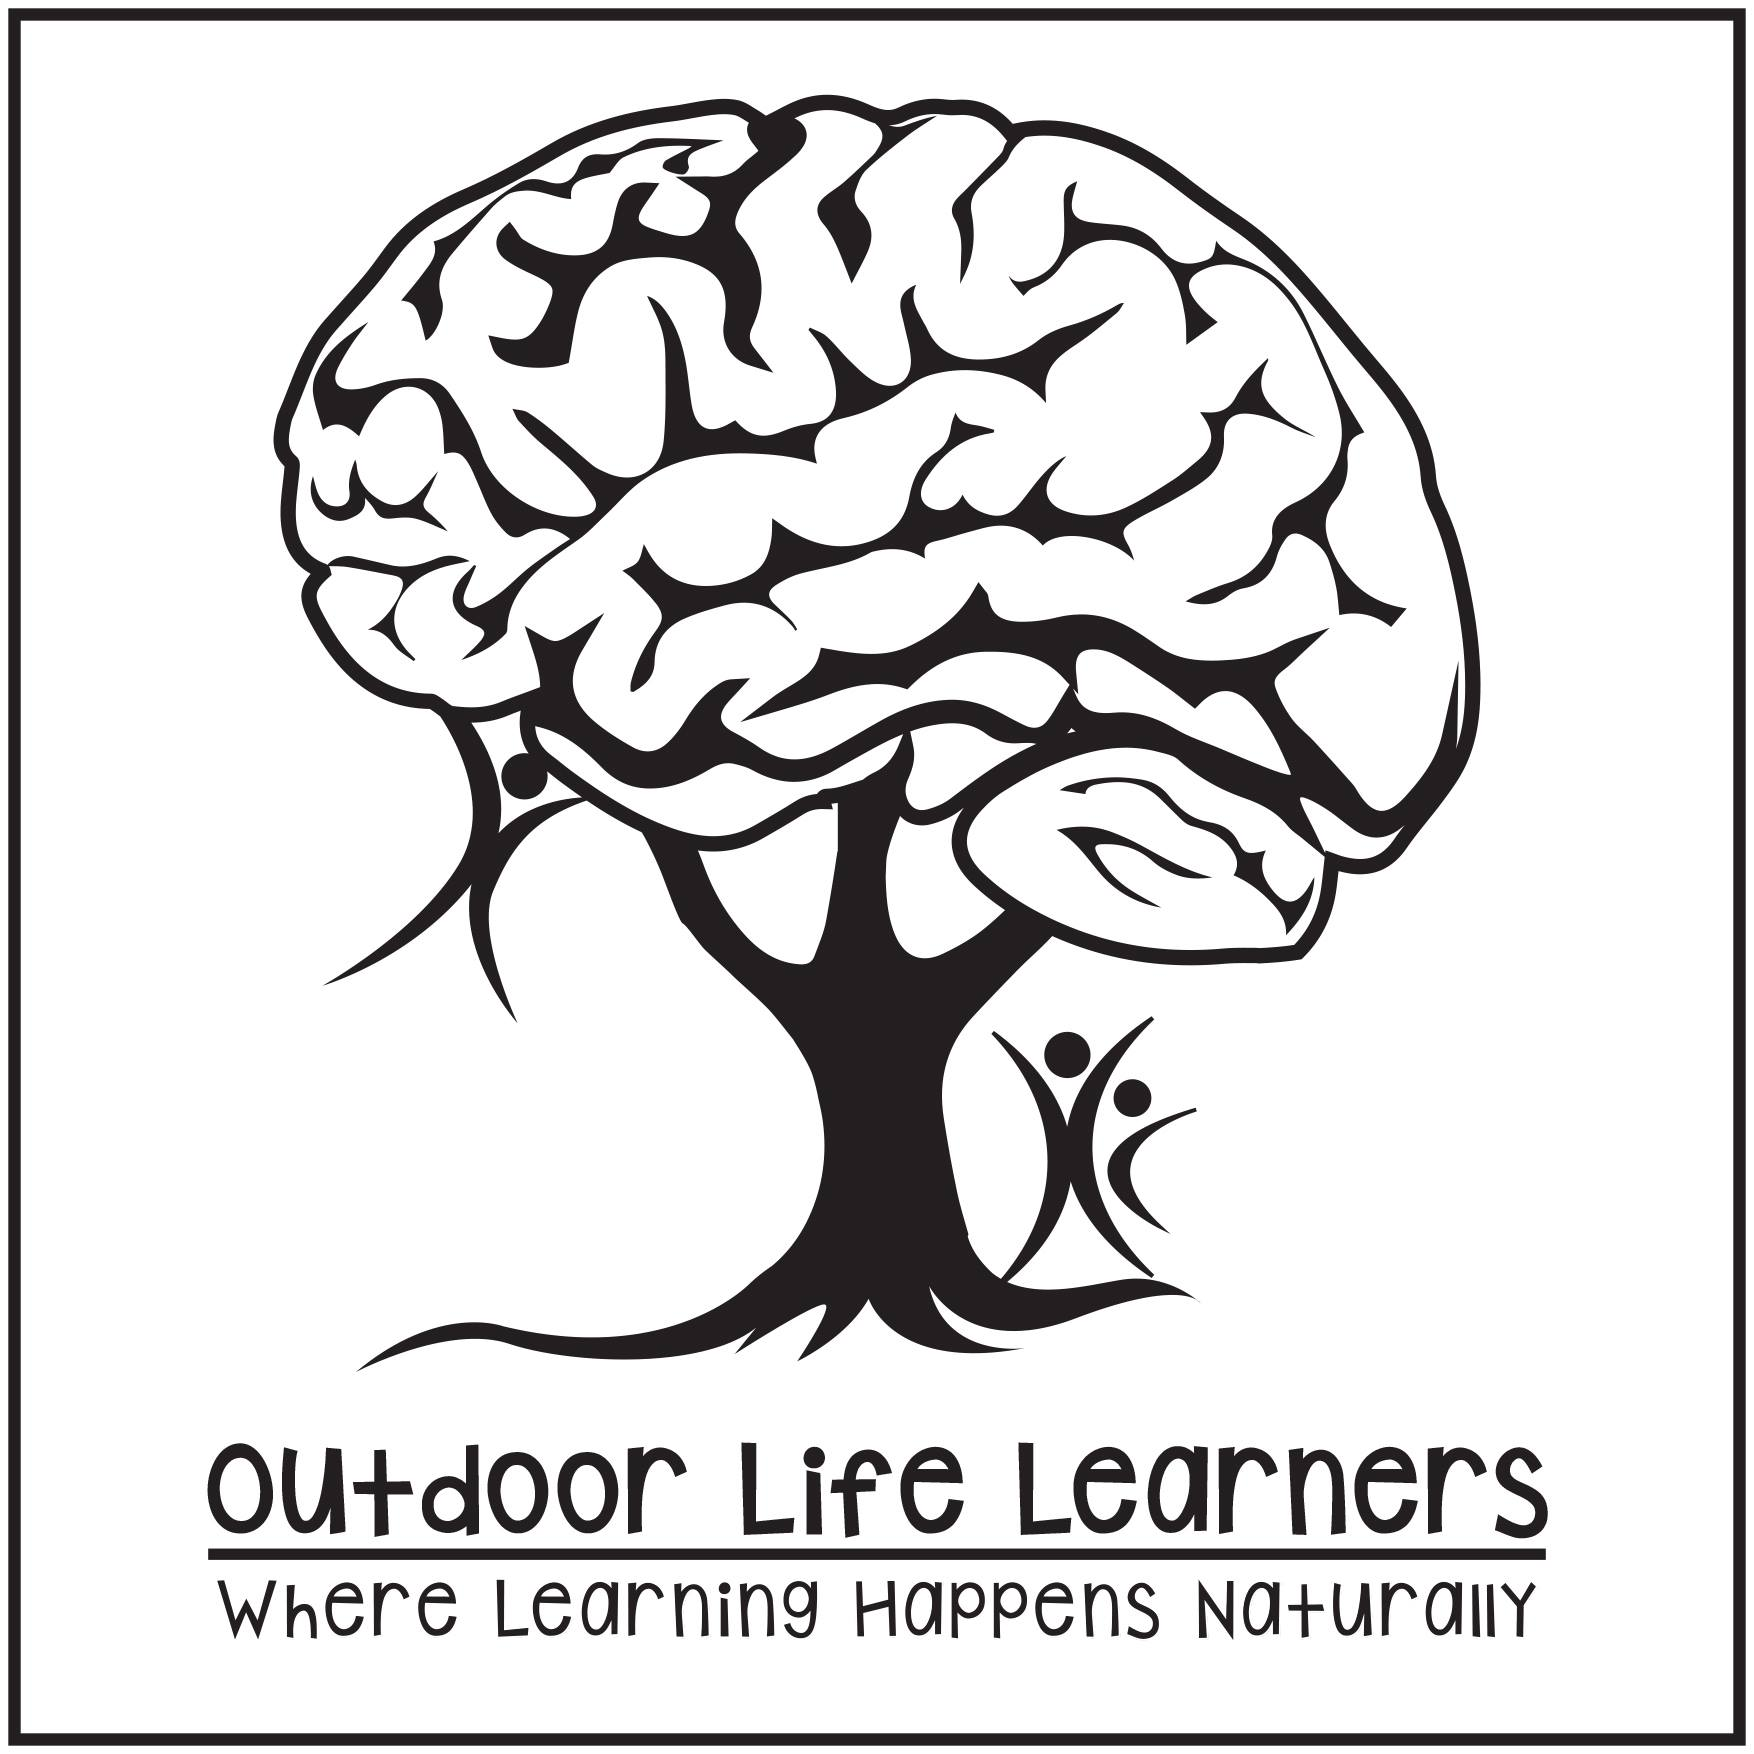 Outdoor Life Learners